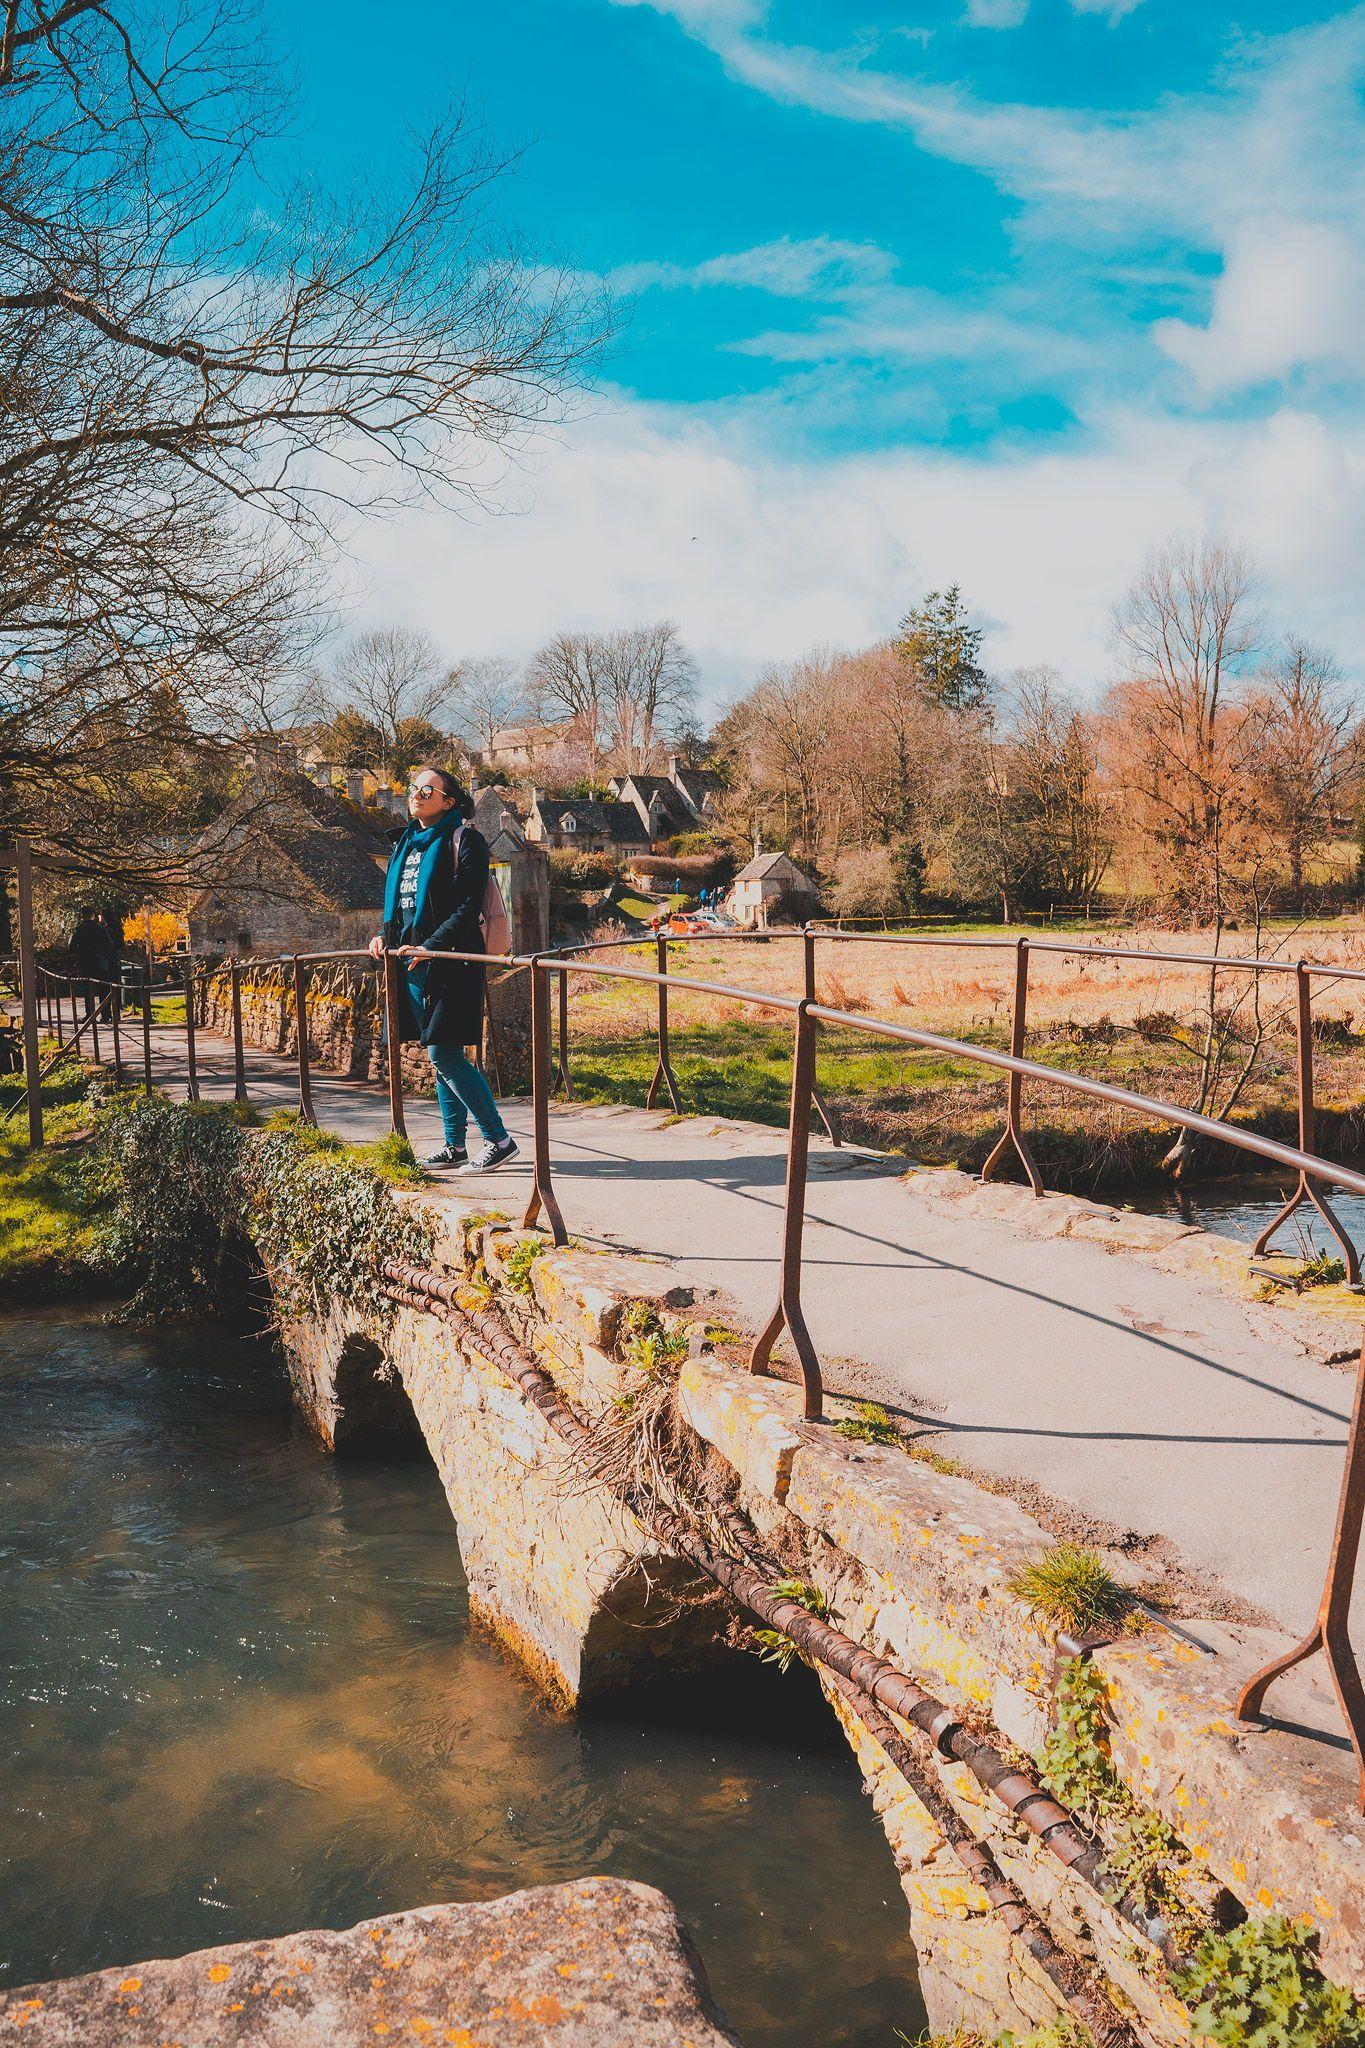 Bibury & The Cotswolds - The Most Charming Villages in England #travelengland